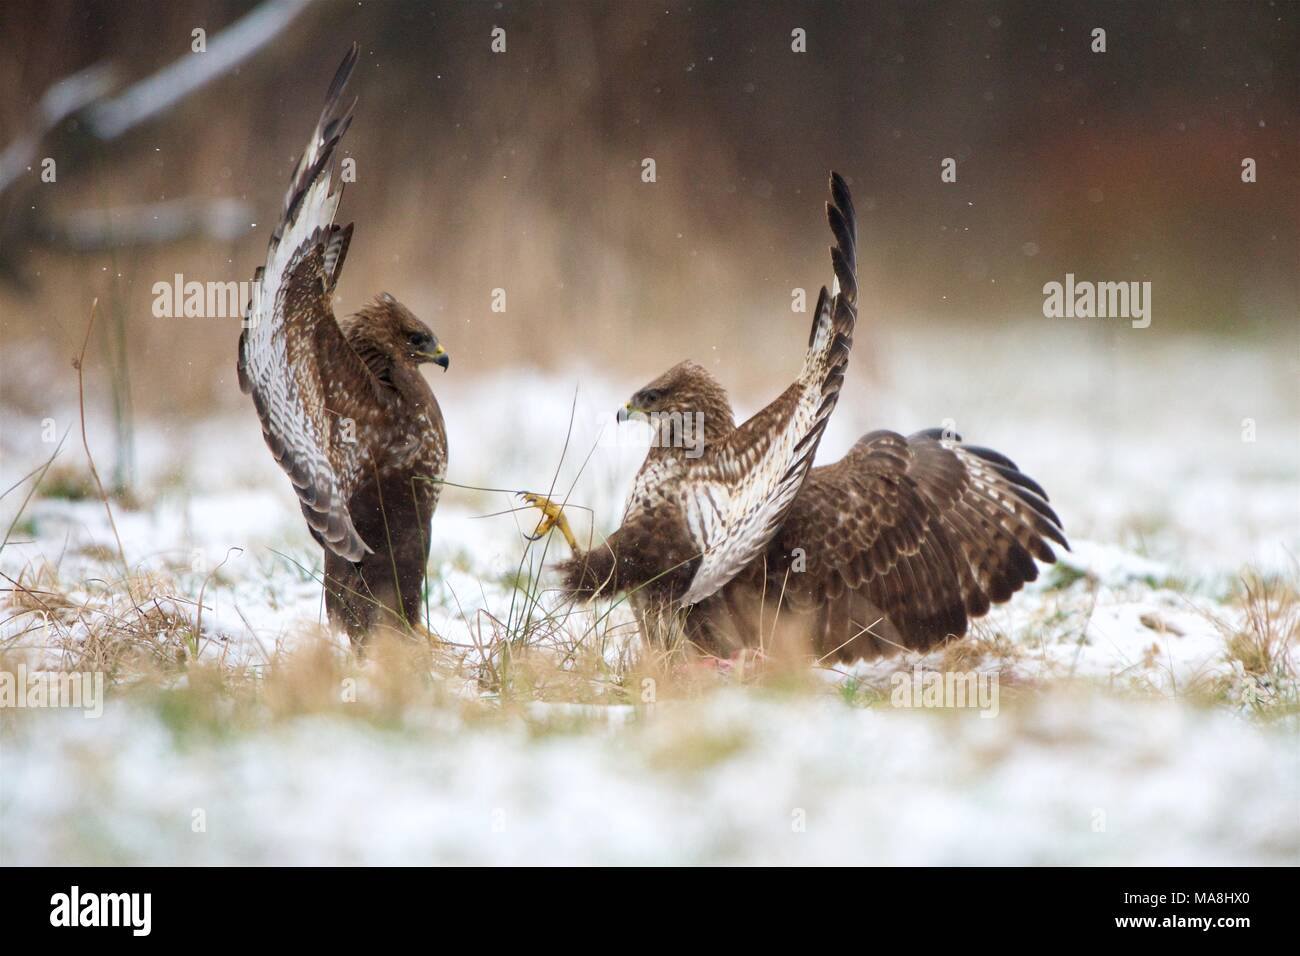 Two Common Buzzards fight in a snowed field, in Bialowieza Forest, Poland. Stock Photo